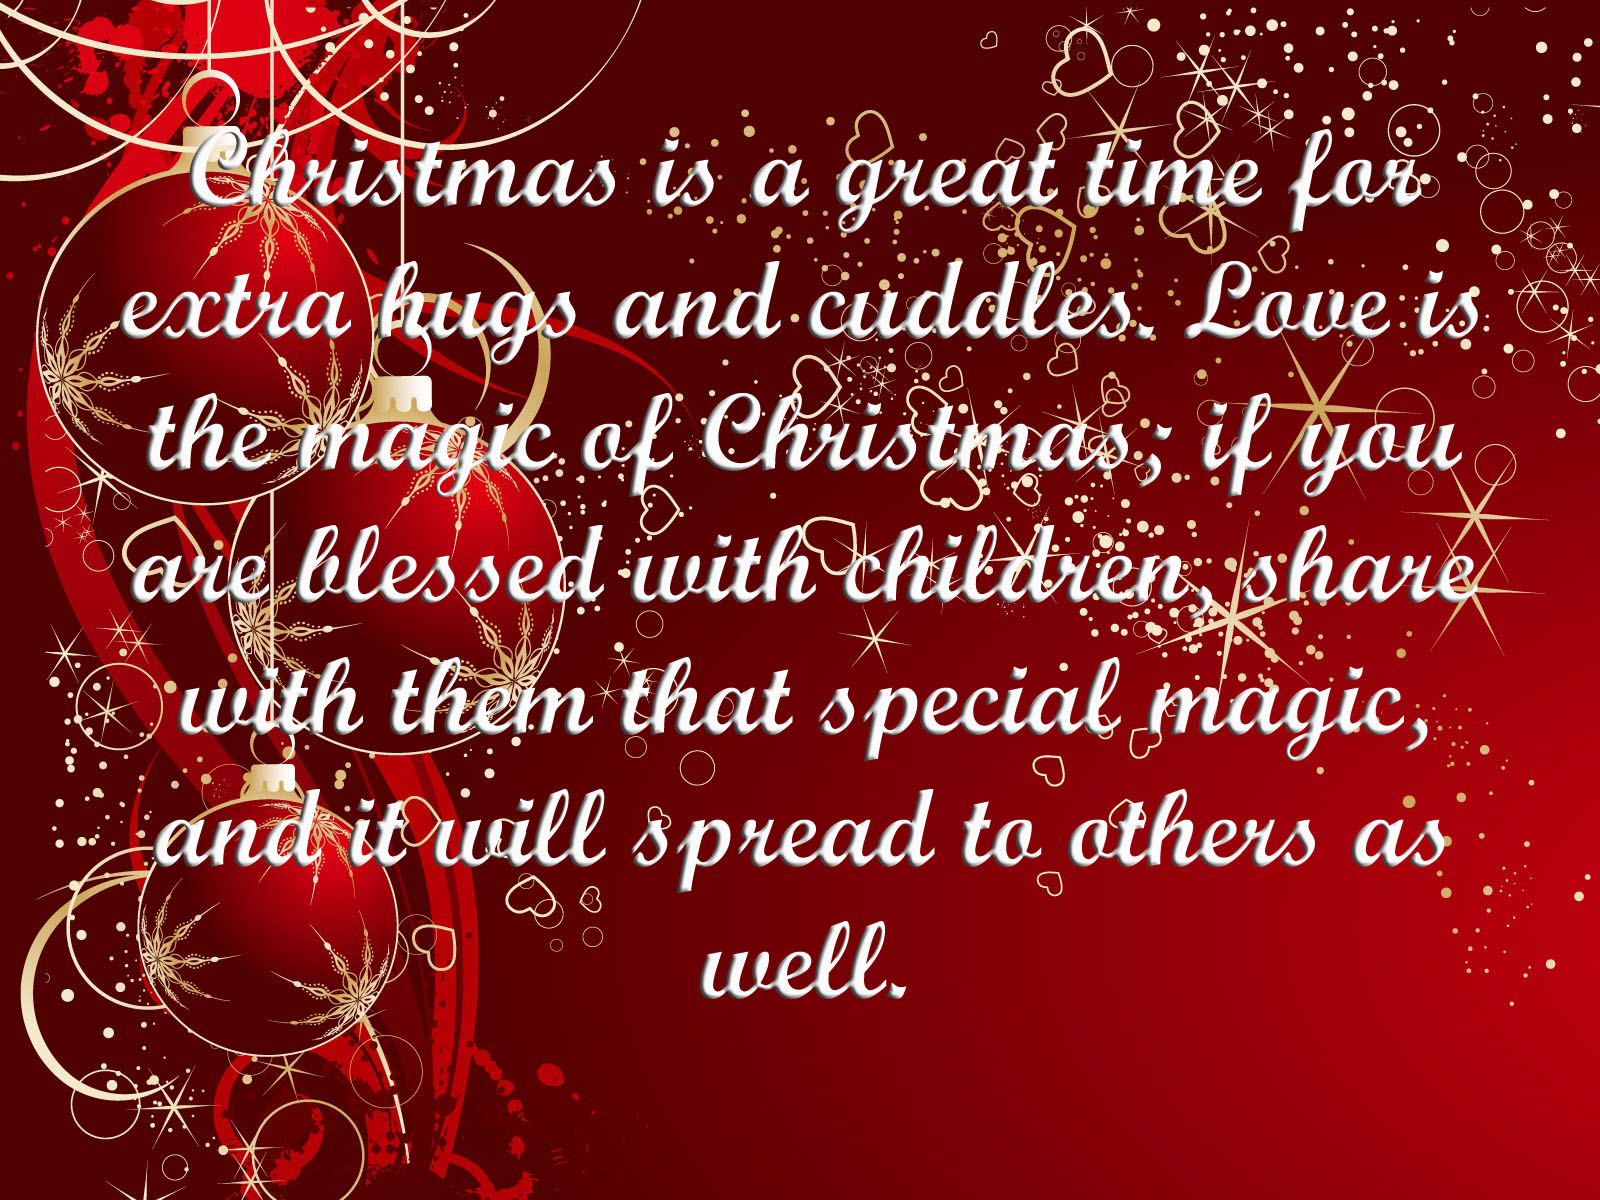 Christmas Is A Great Time For Extra Hugs And Cuddles. Love Is The Magic Of Ch...